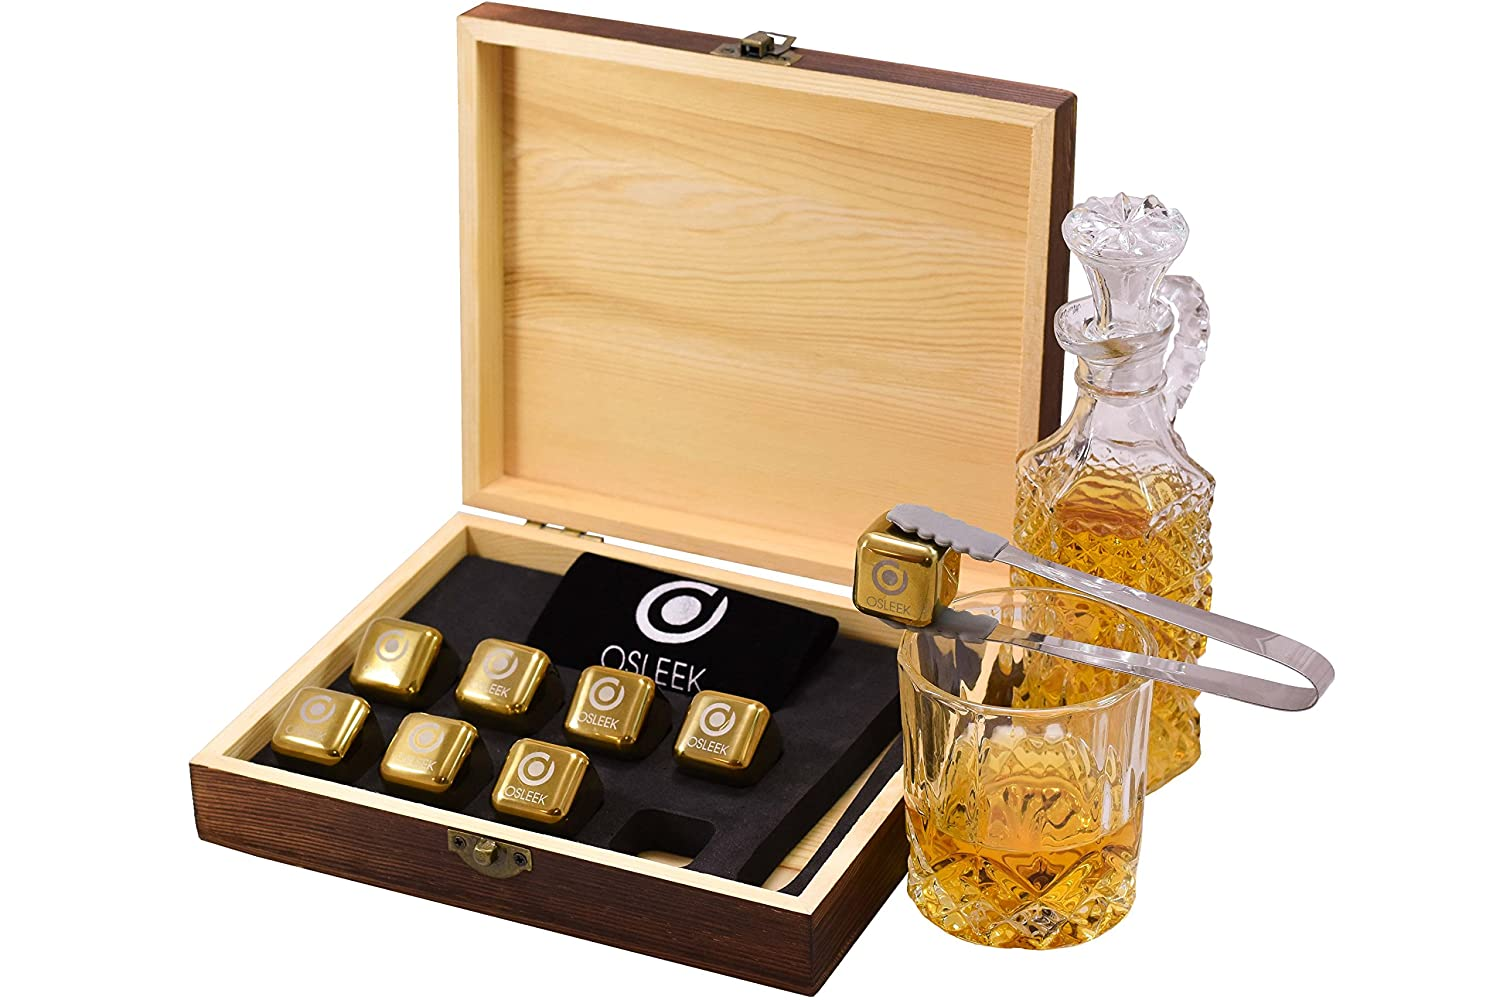 Whiskey Stones - Set of 8 Titanium Gold Plated Stainless Steel Chilling Rocks Stored In A Premium Handmade Quality Wood Gift Box - Velvet Freezing Bag And Tong Included Osleek